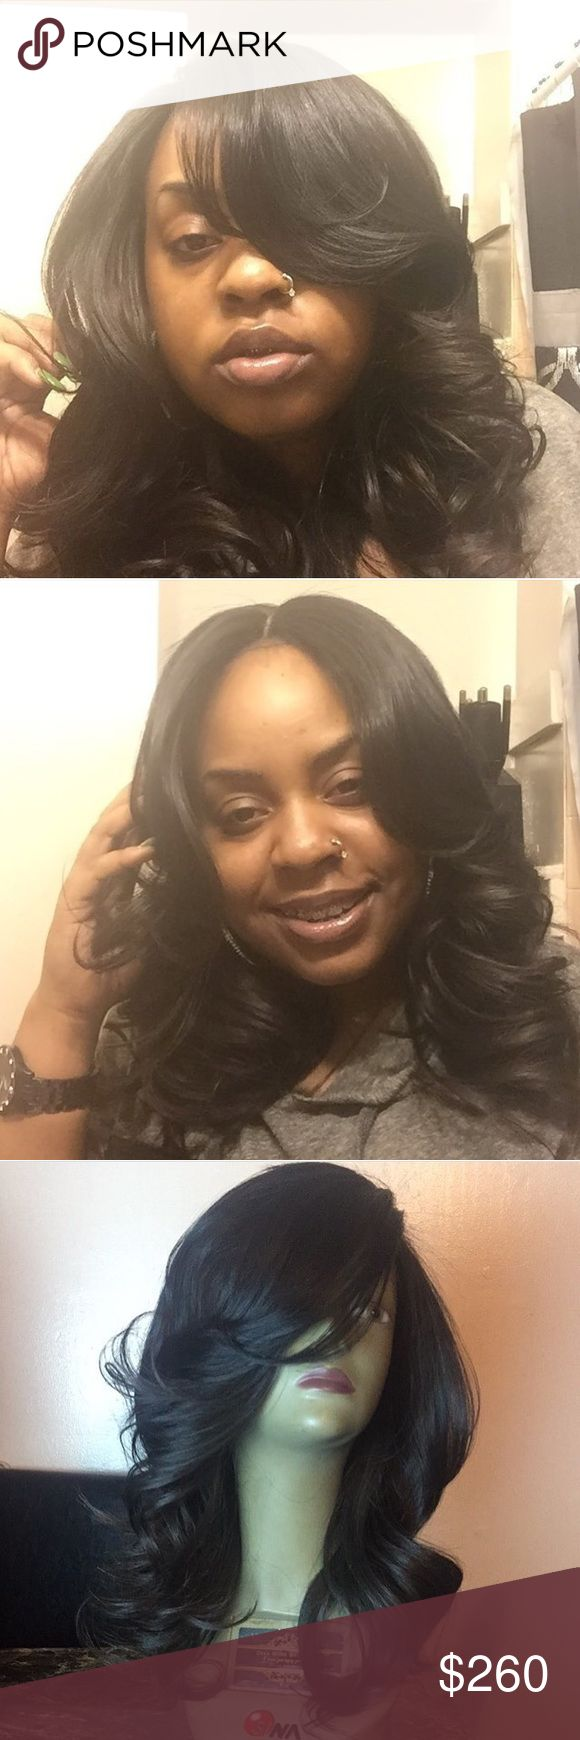 """Lace front unit 18"""" virgin hair , styled in nice curls , can be worn as middle or side part . wig Other"""